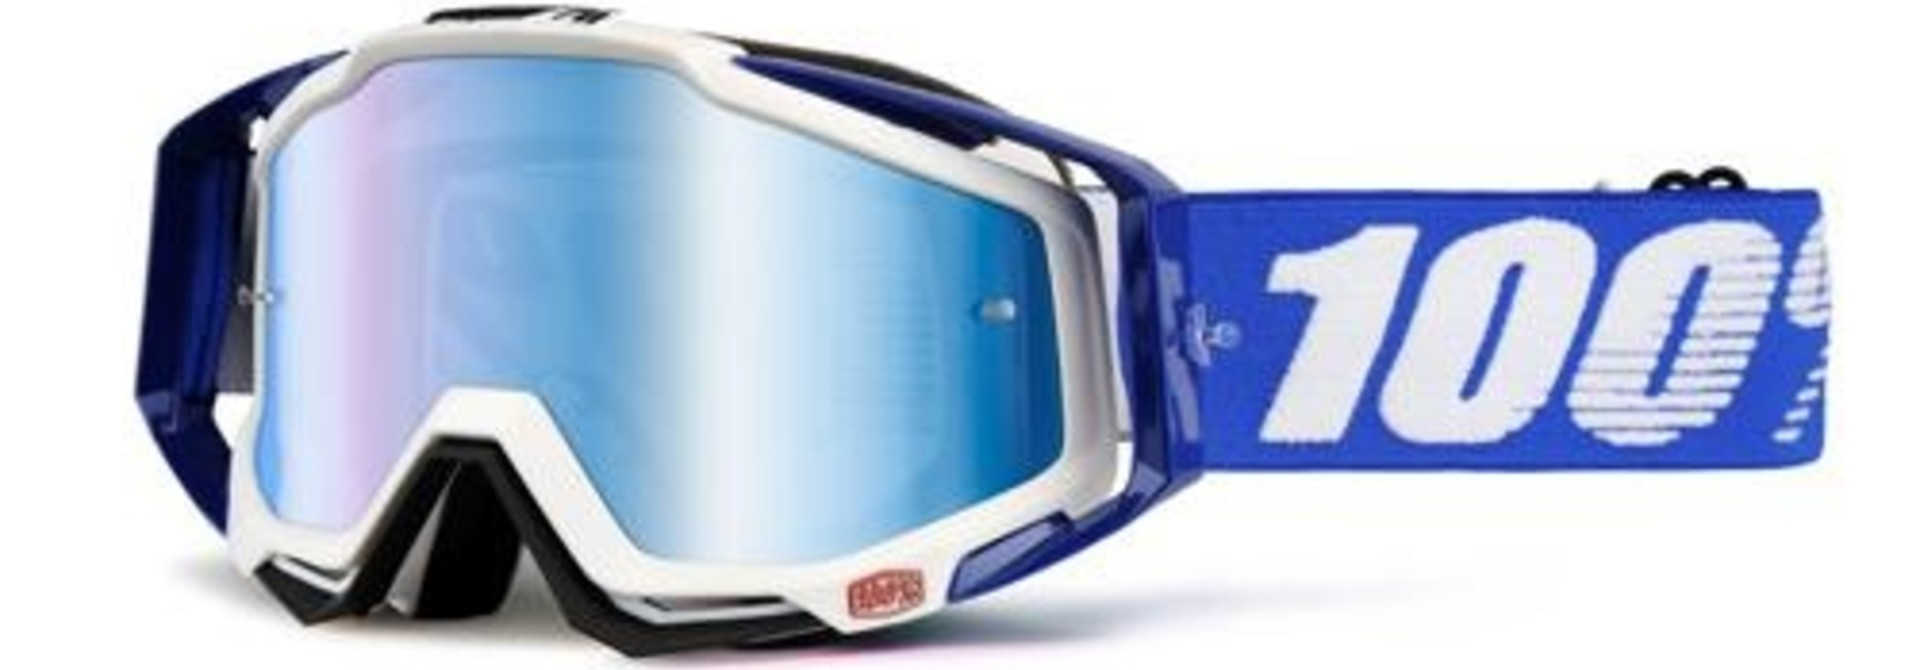 100% Racecraft Mirror Goggle (1 Extra Clear Lens Included)